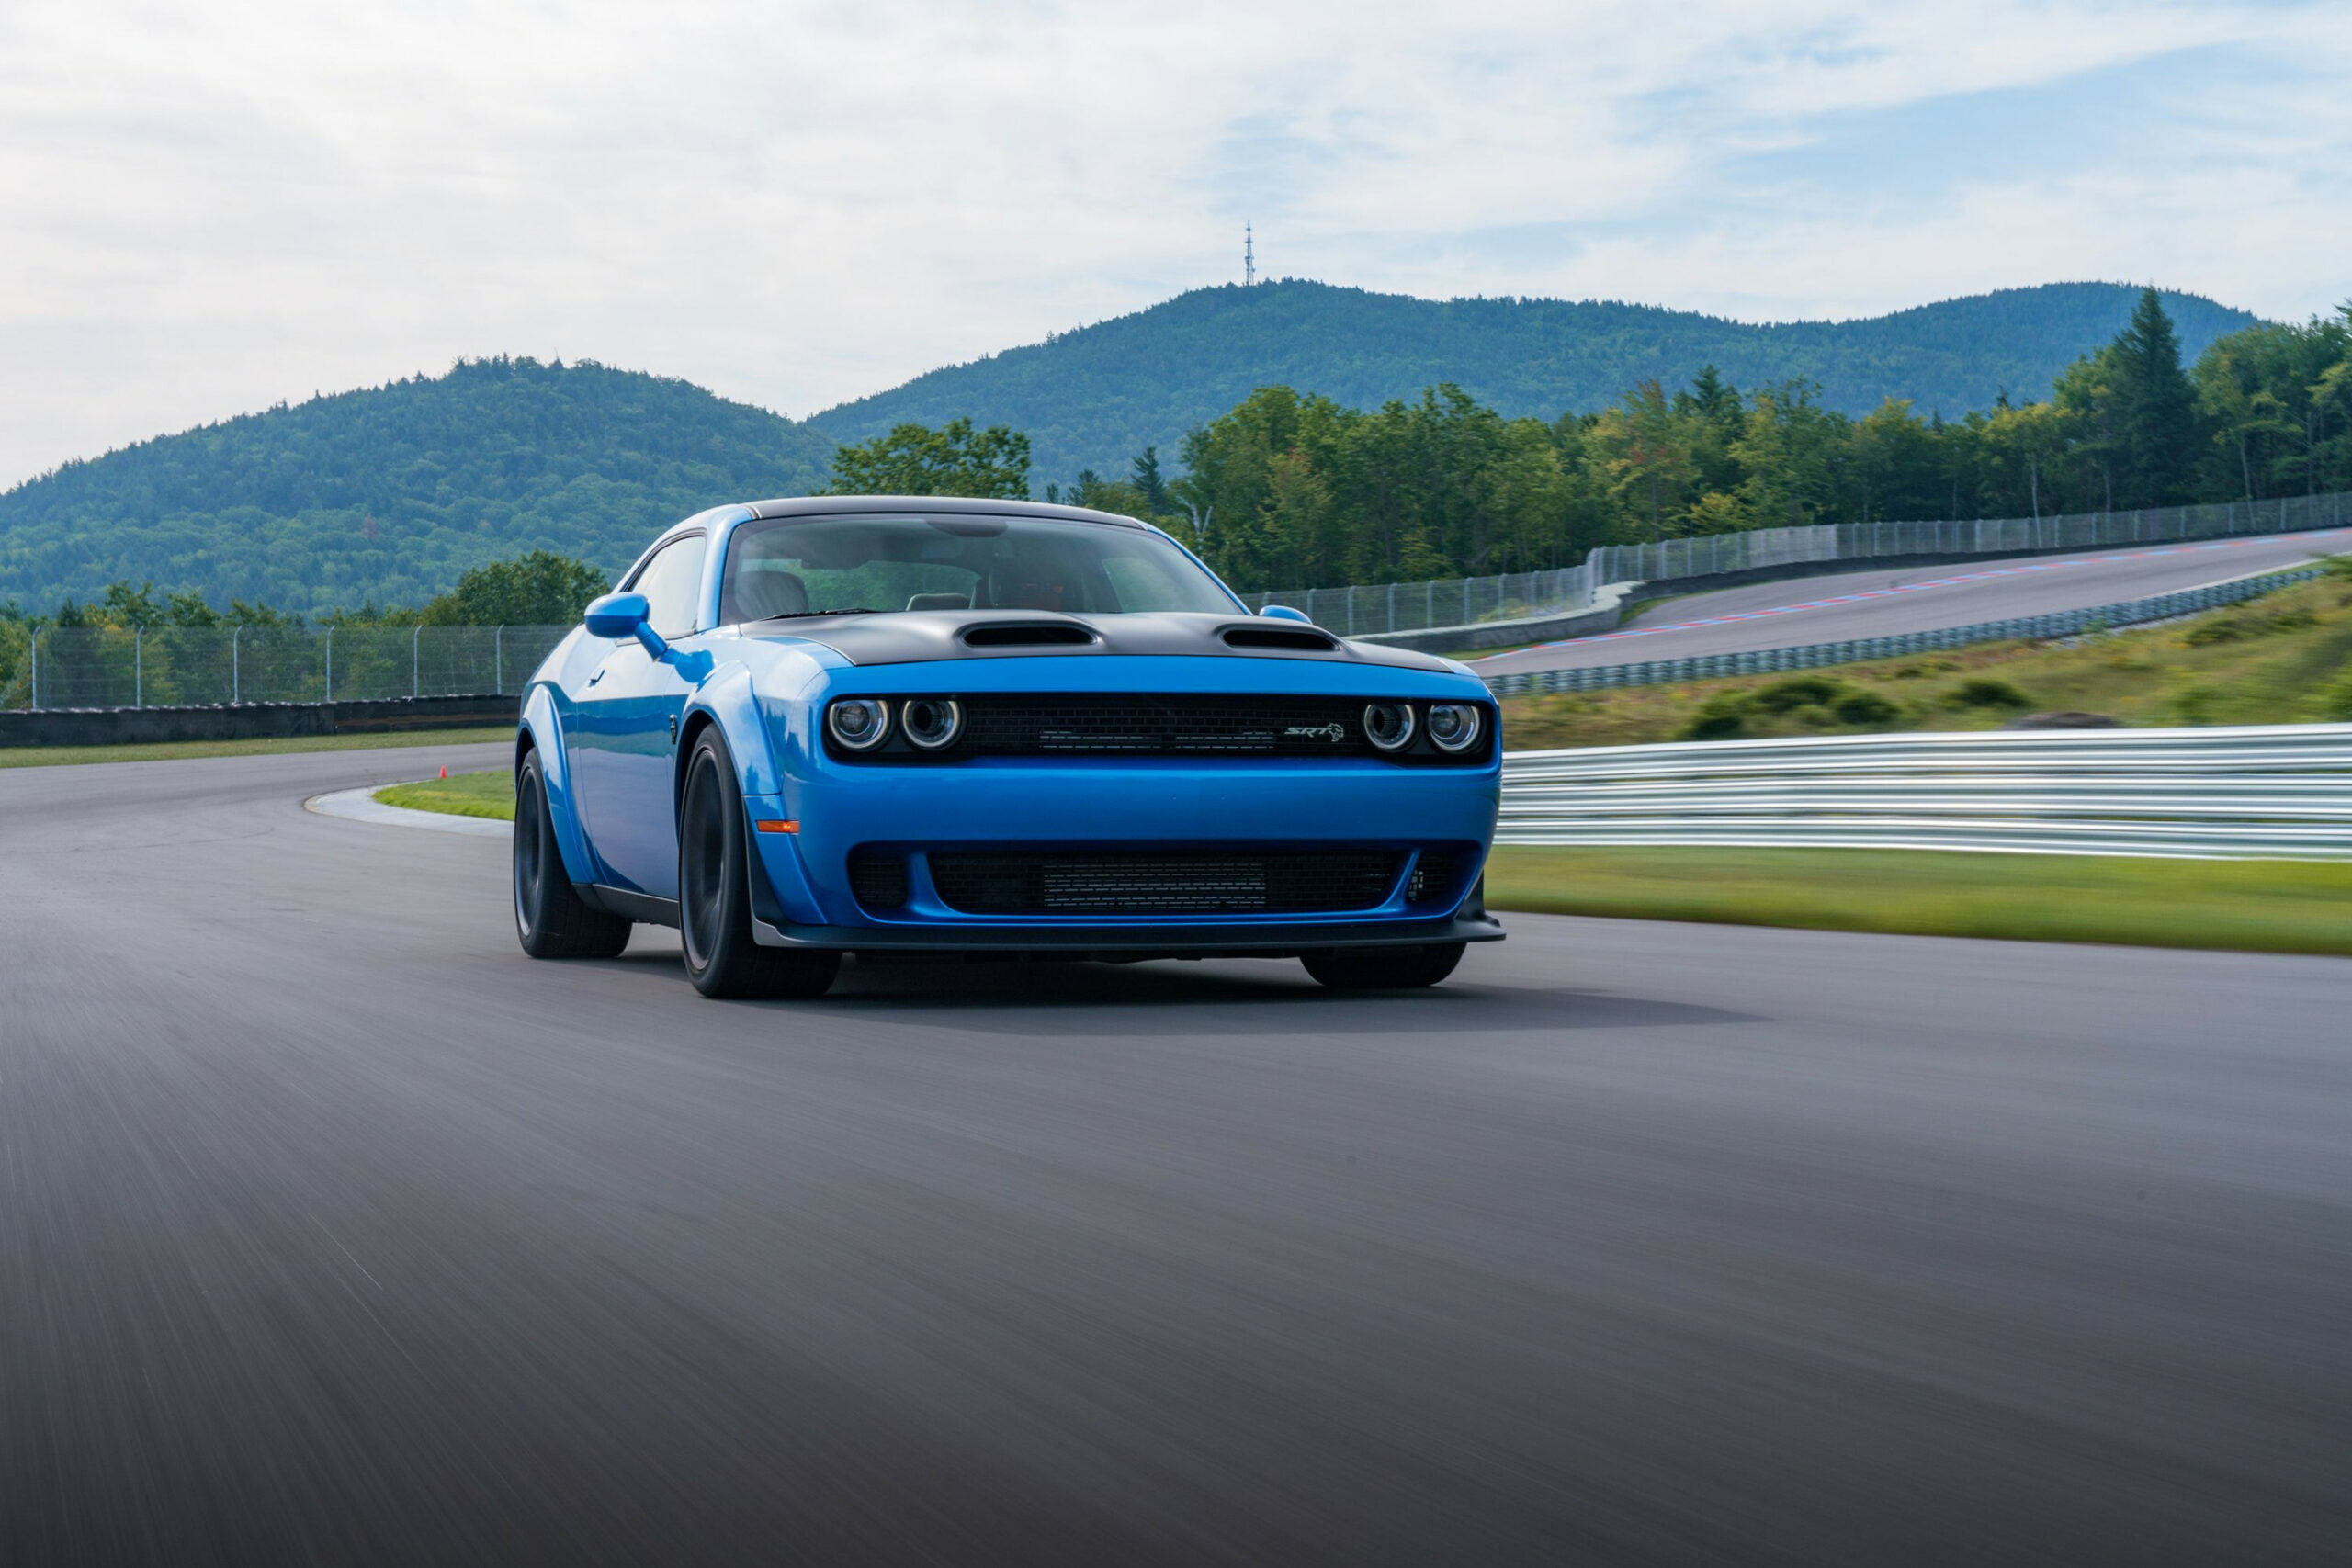 12 Dodge Challenger SRT Hellcat Review, Pricing, and Specs